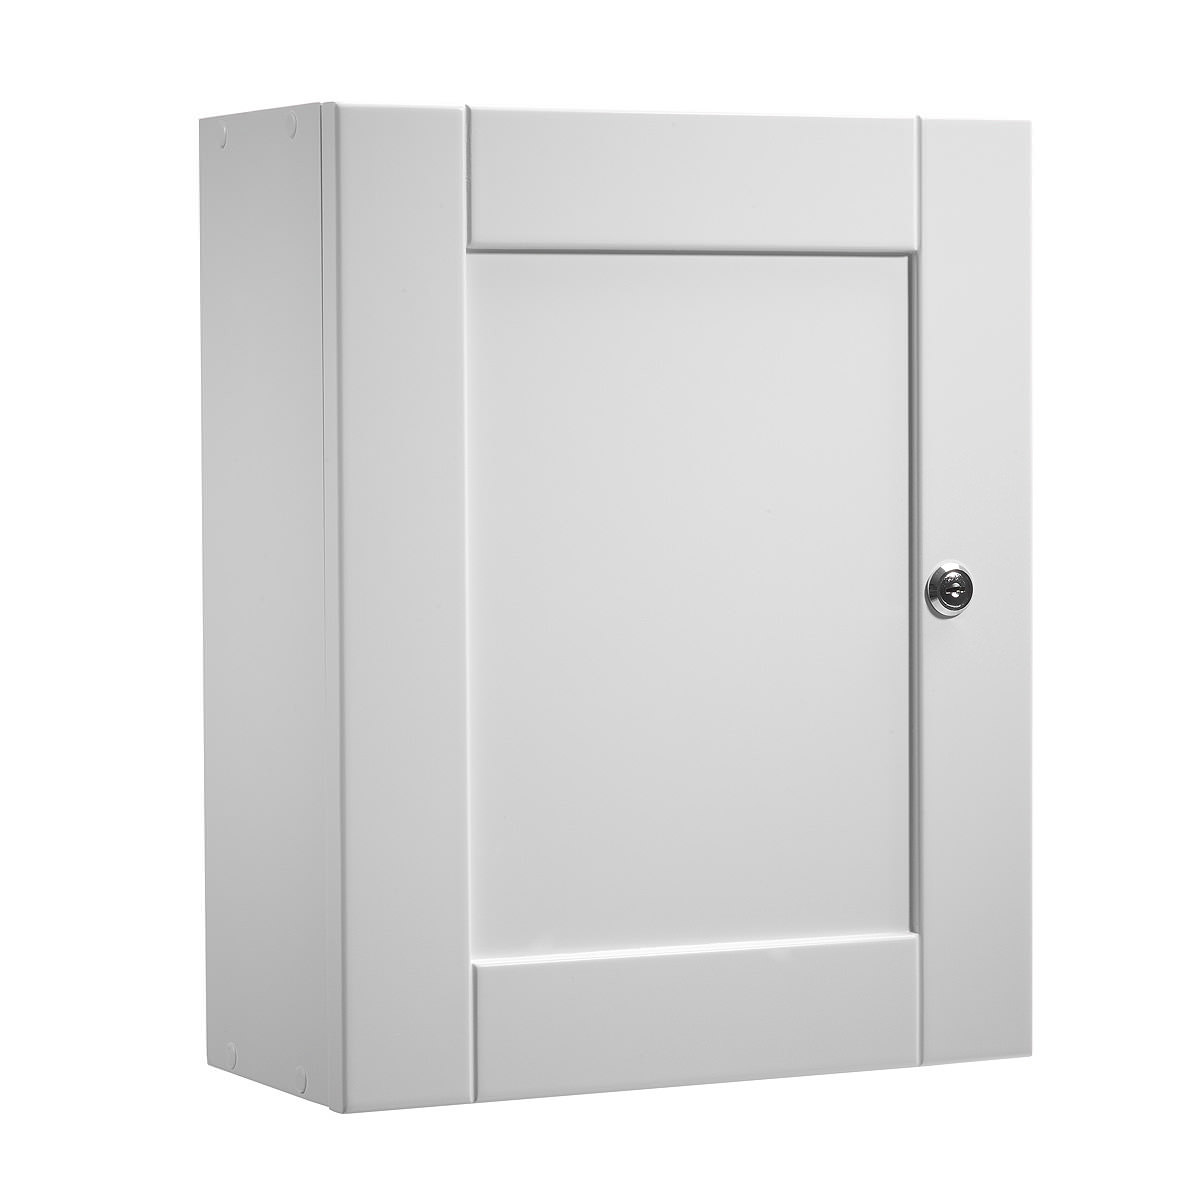 Roper rhodes medicab lockable single door wall cabinet for White bathroom furniture